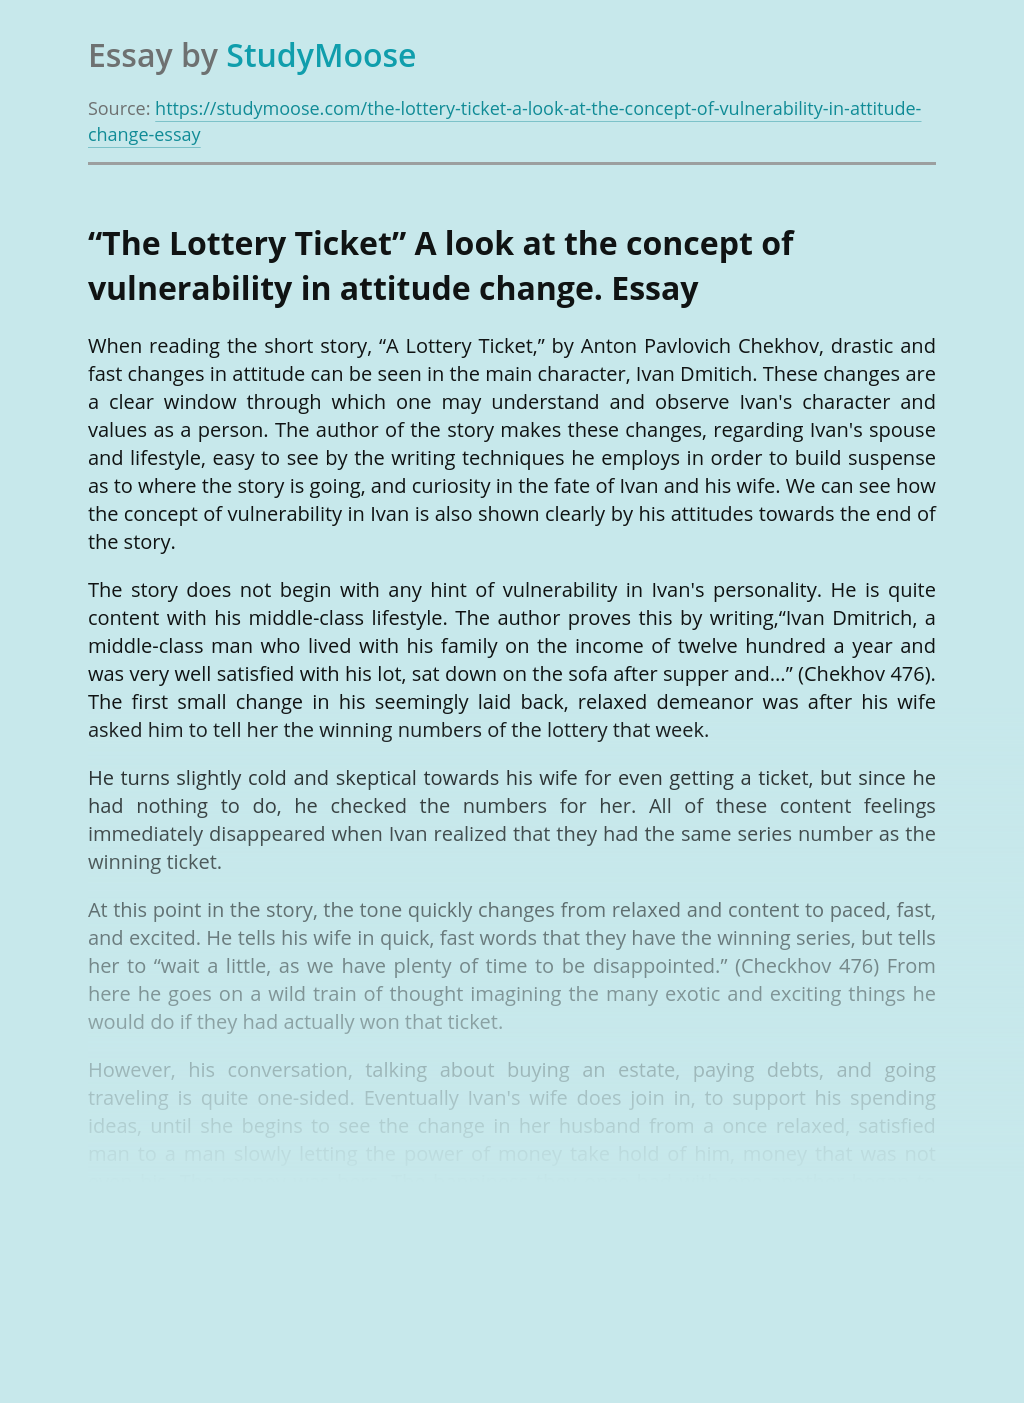 """""""The Lottery Ticket"""" A look at the concept of vulnerability in attitude change."""